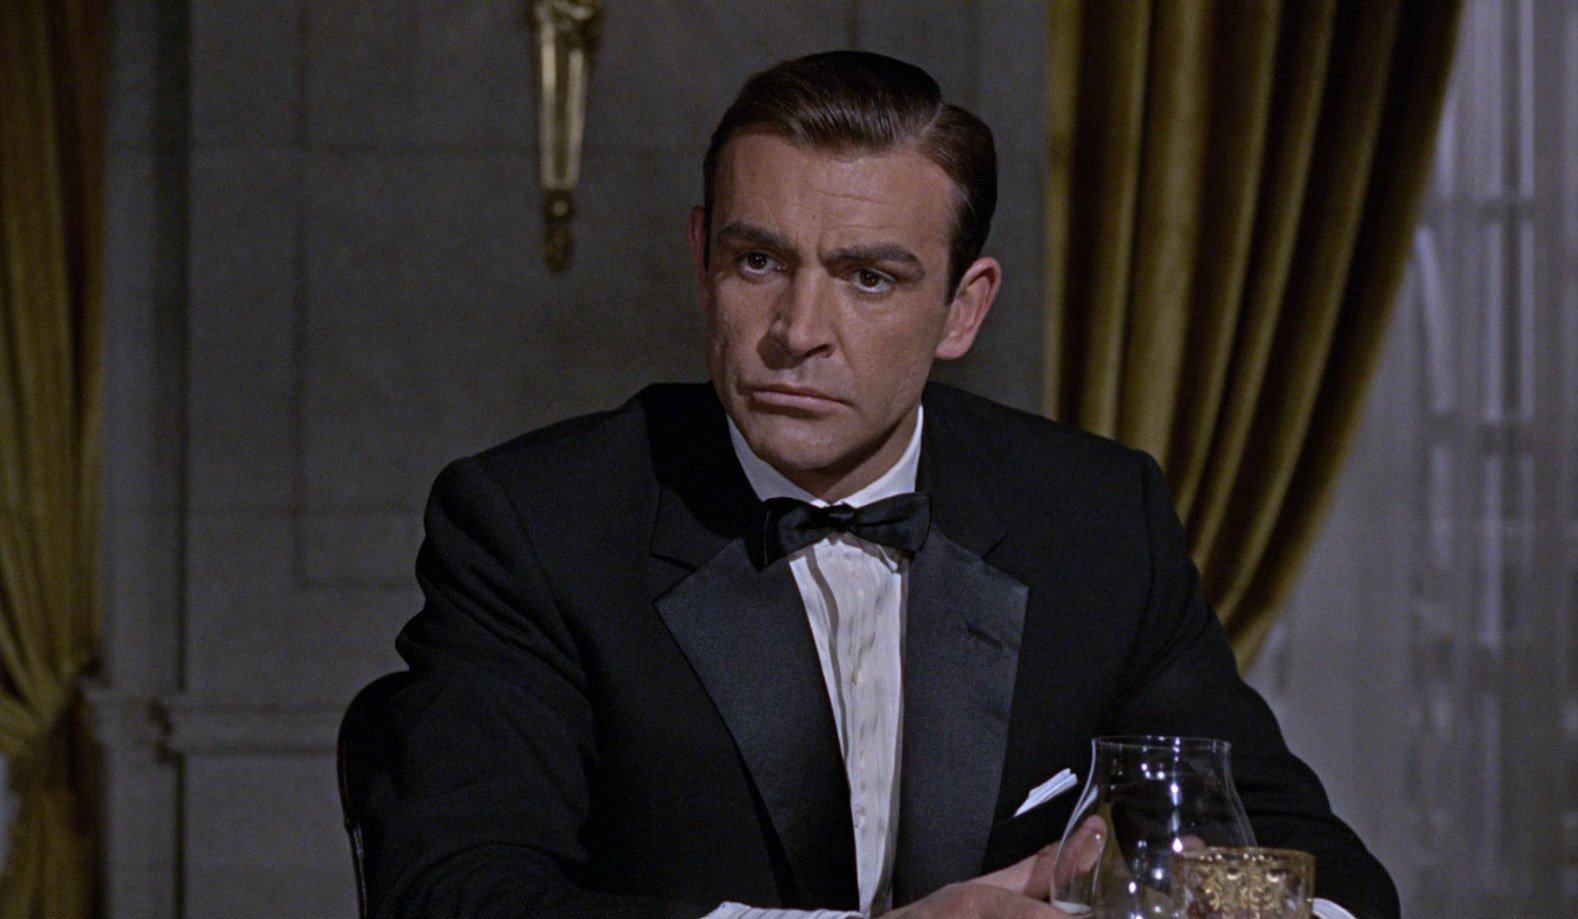 https://www.bondsuits.com/wp-content/uploads/2011/03/Goldfinger-Black-Dinner-Suit.jpg